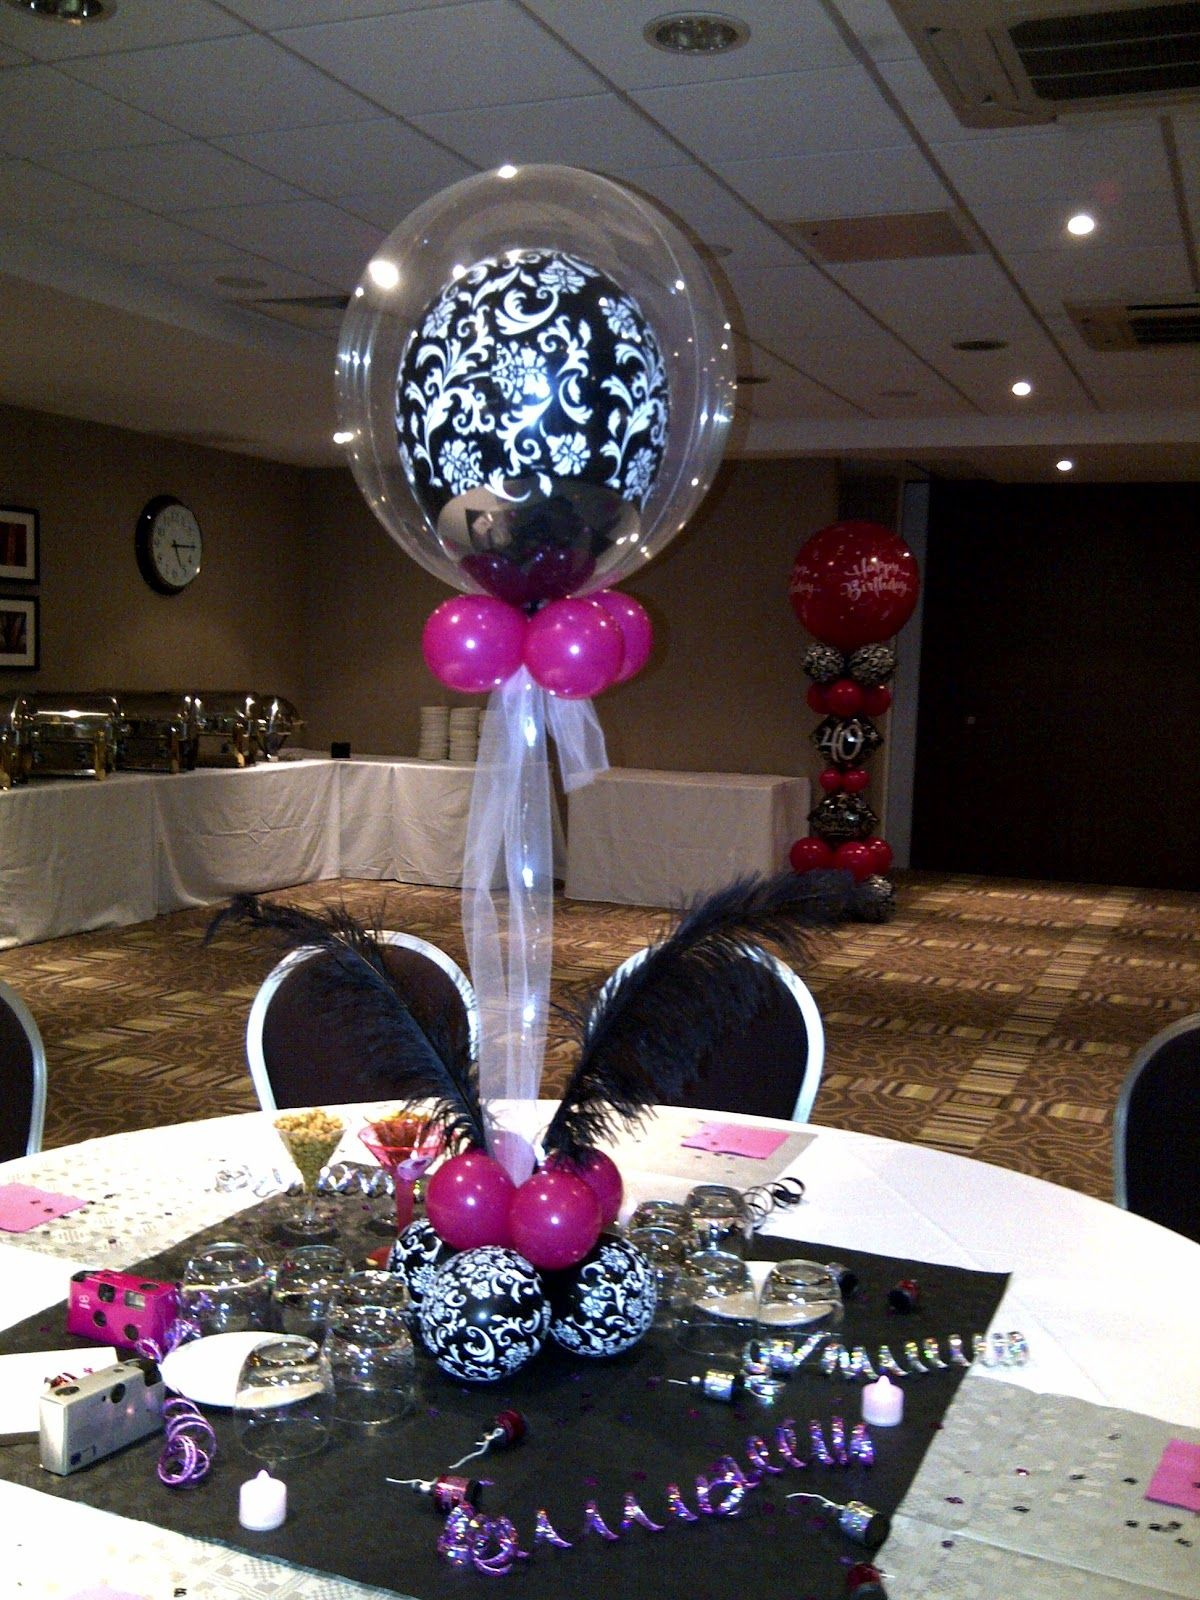 Centerpieces Birthday Tables Ideas 60th birthday party table decorations 60th milestone centerpiece Pink And Black Centerpieces Ideas Balloon Decorators Wild Berry Pink And